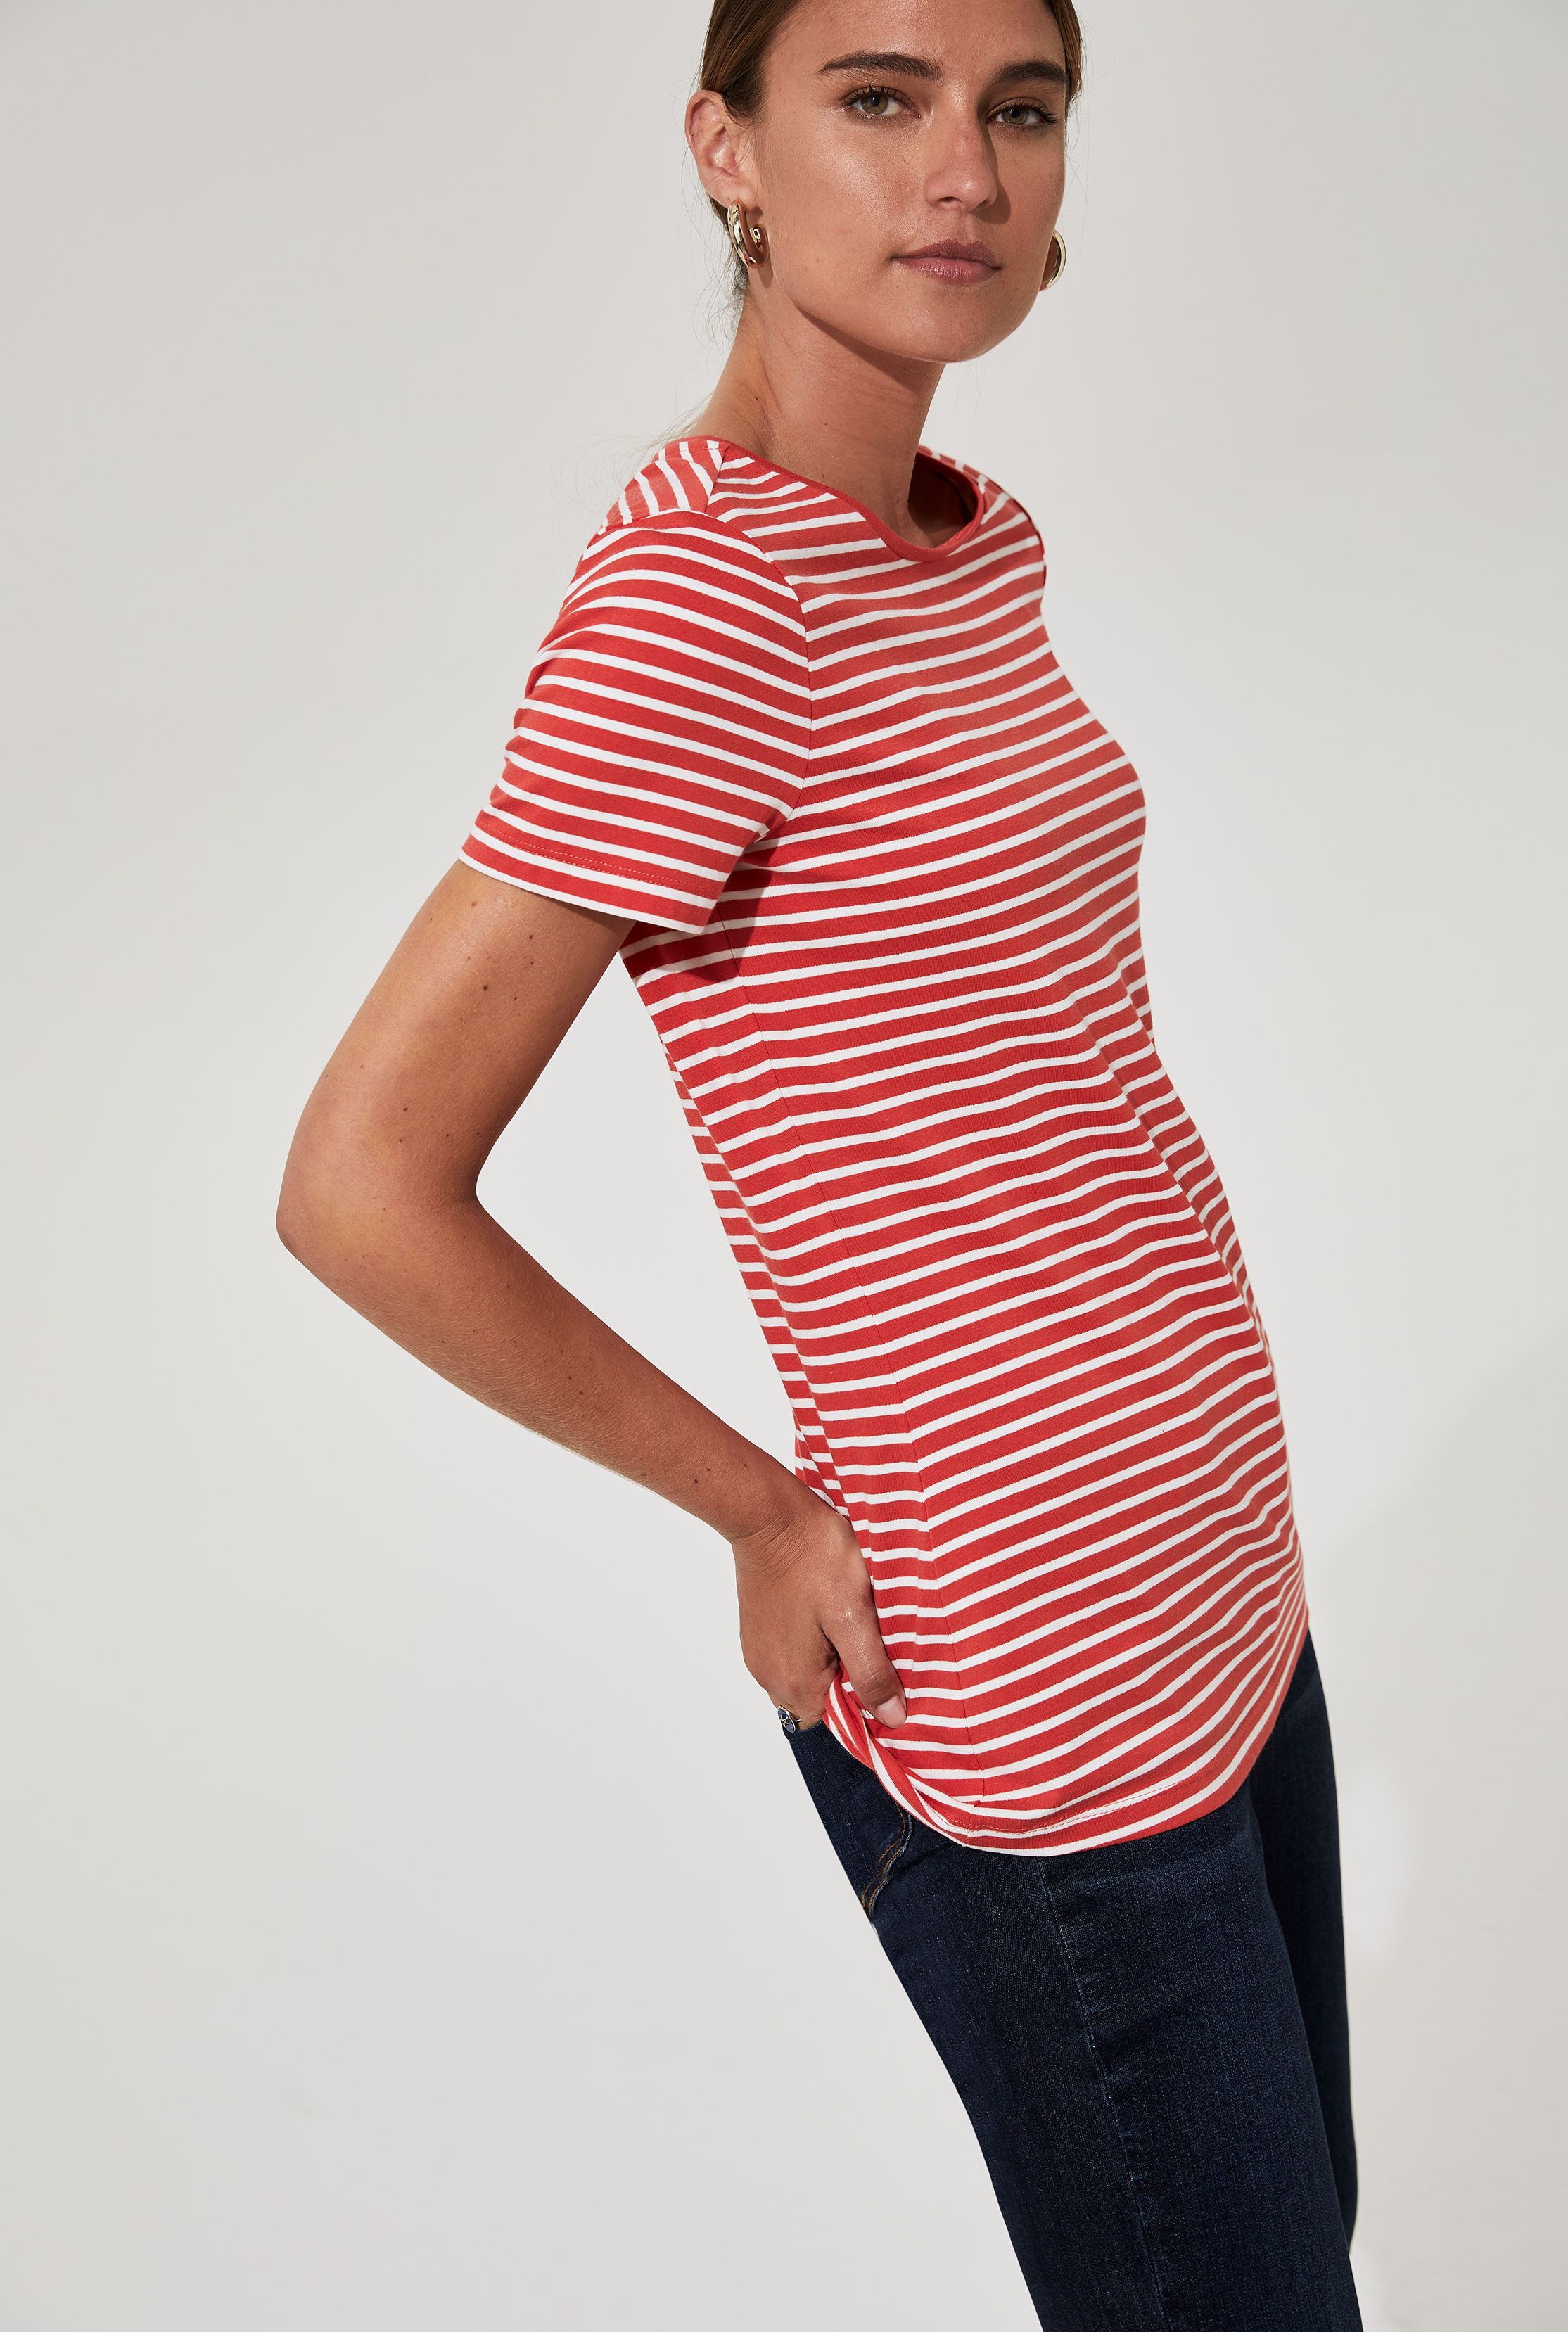 Red Striped Cotton T-Shirt